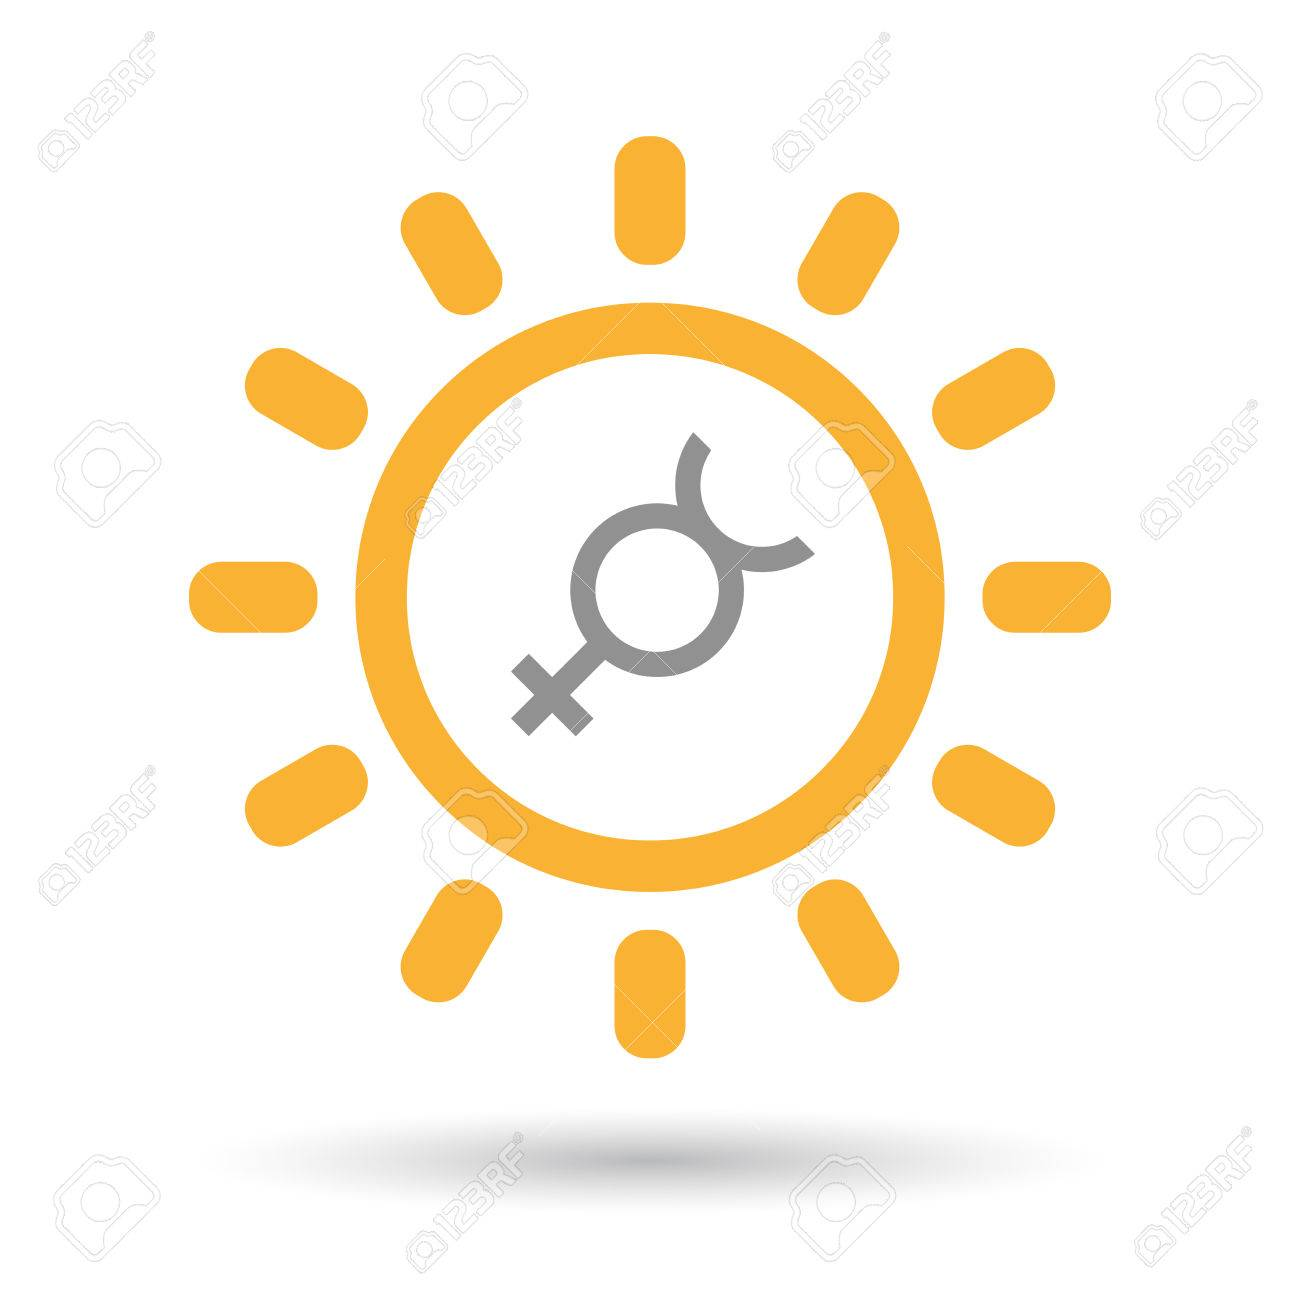 Illustration Of An Isolated Line Art Sun Icon With The Mercury